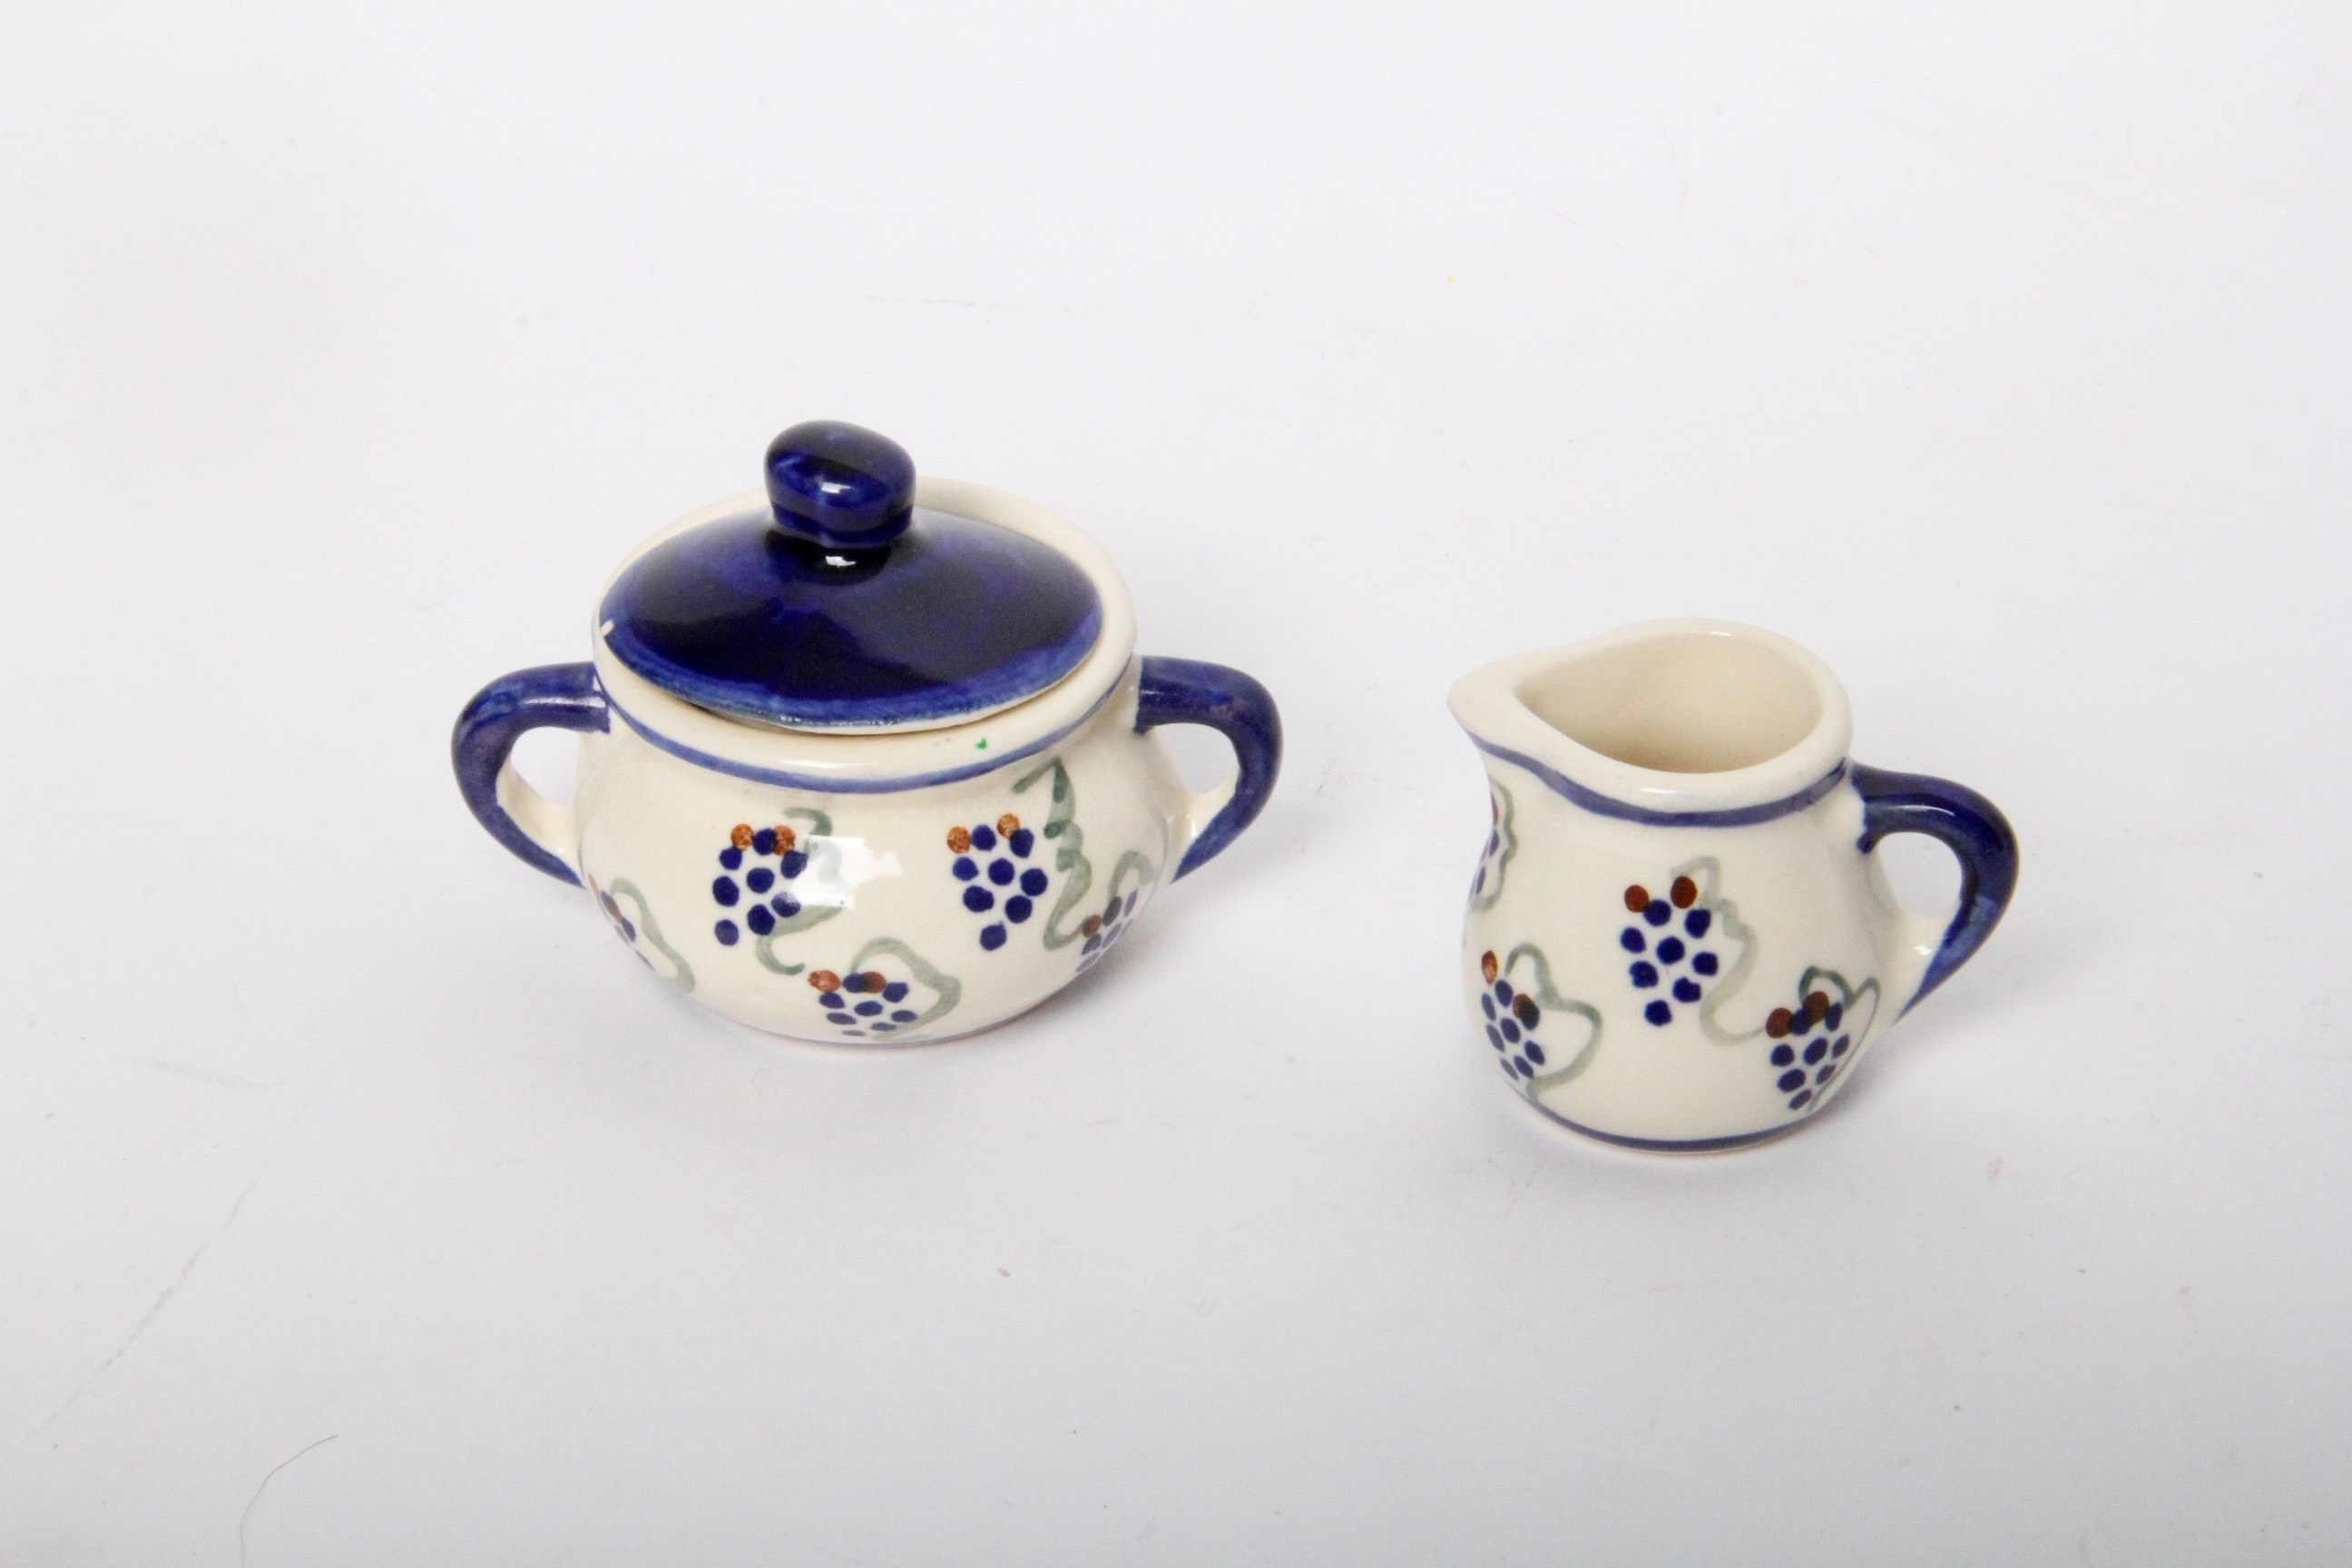 Handmade ceramic tea sets